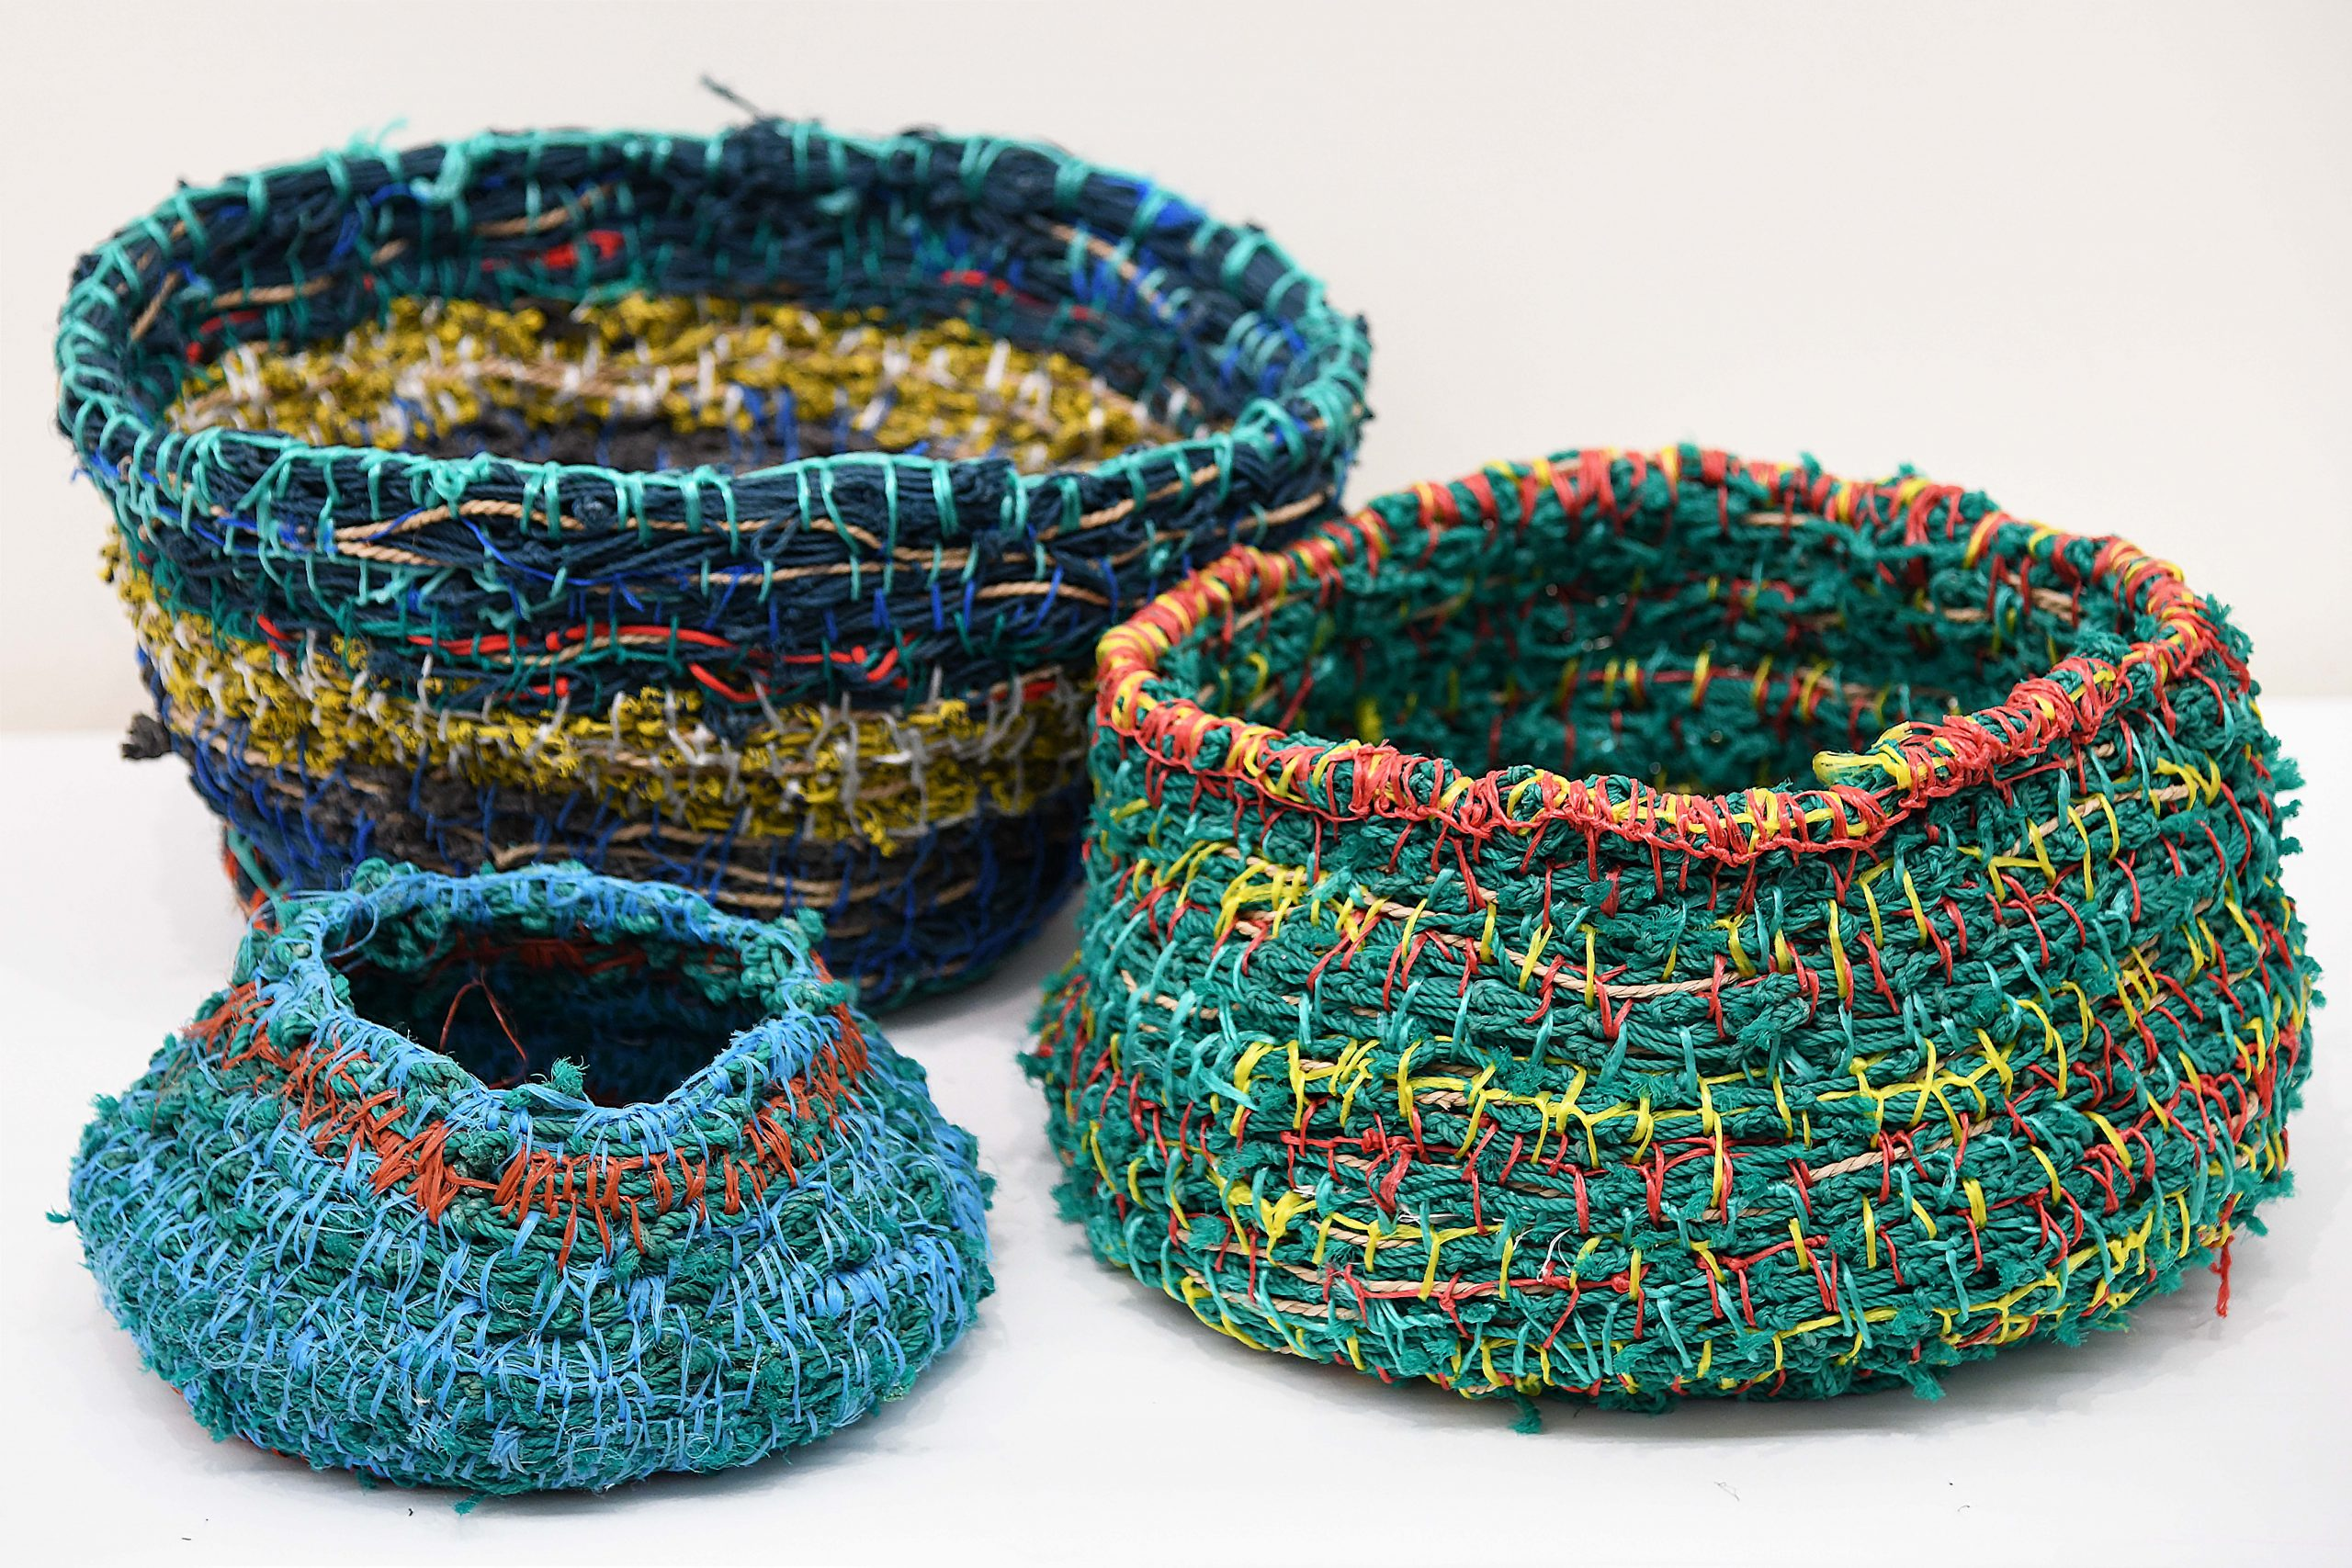 Ghost Net Baskets by Maria Ware